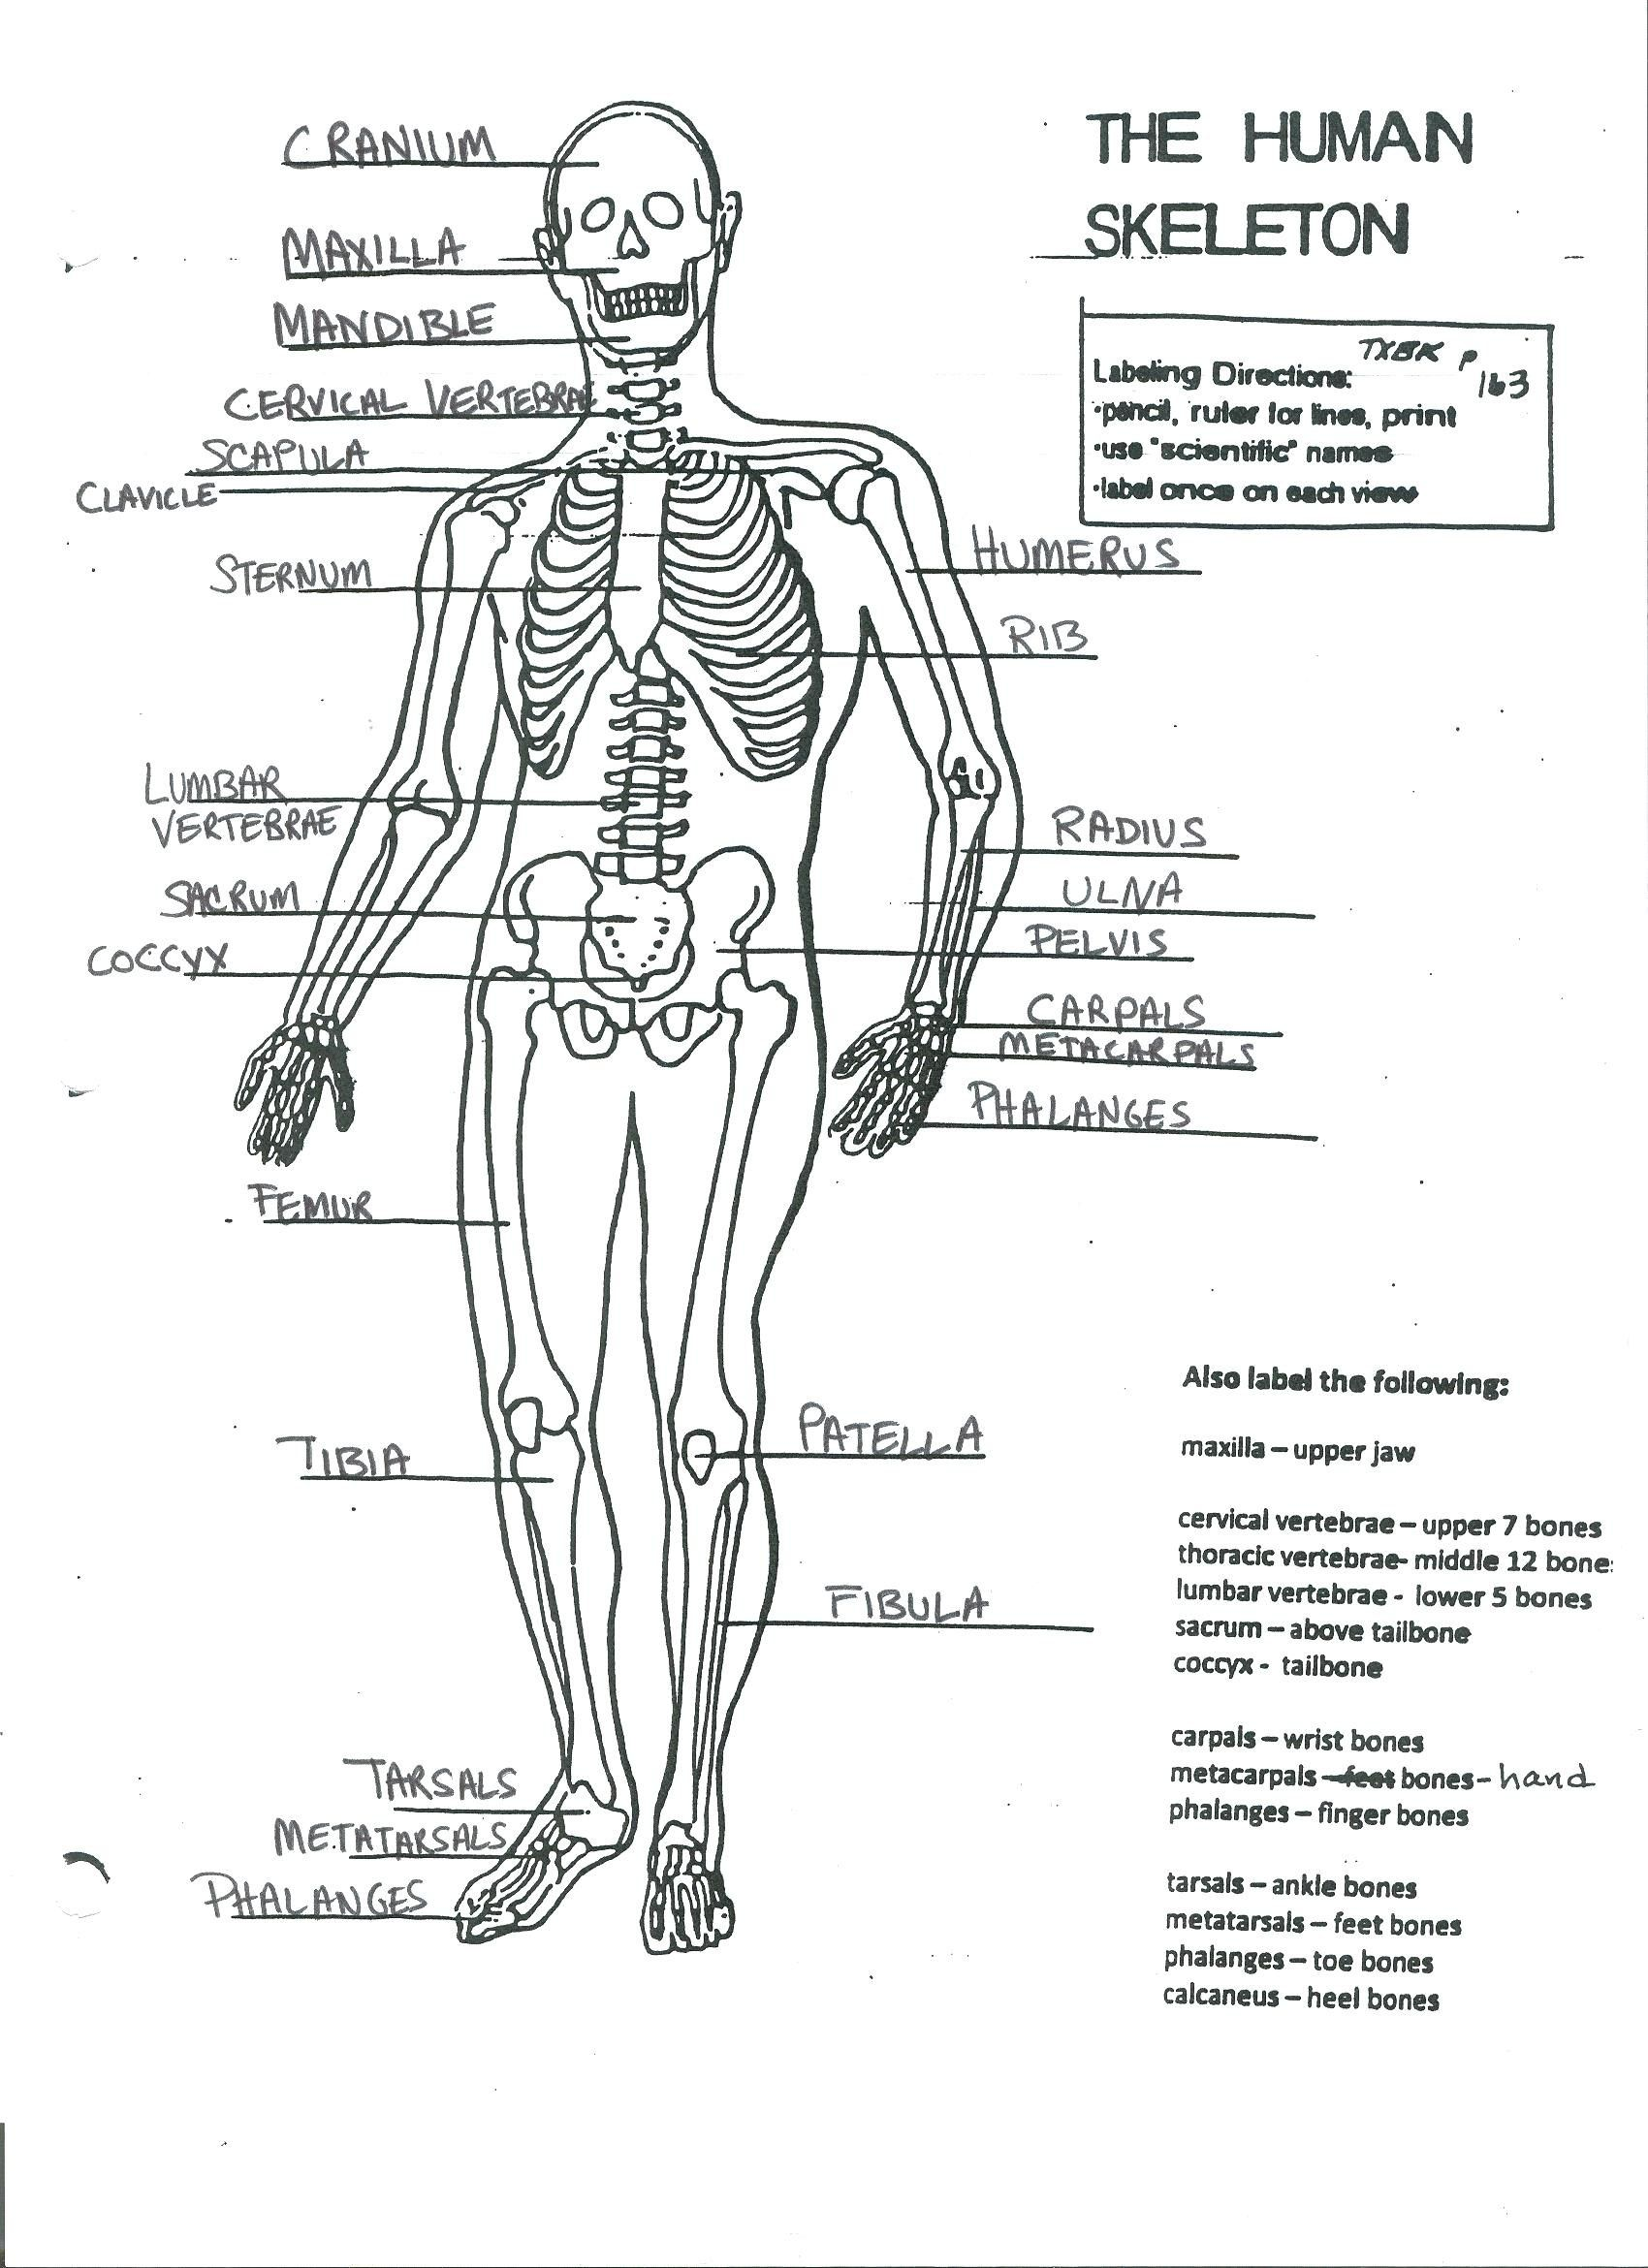 small resolution of human skeleton diagram without labels human skeleton diagram without labels diagram human skeleton diagram without